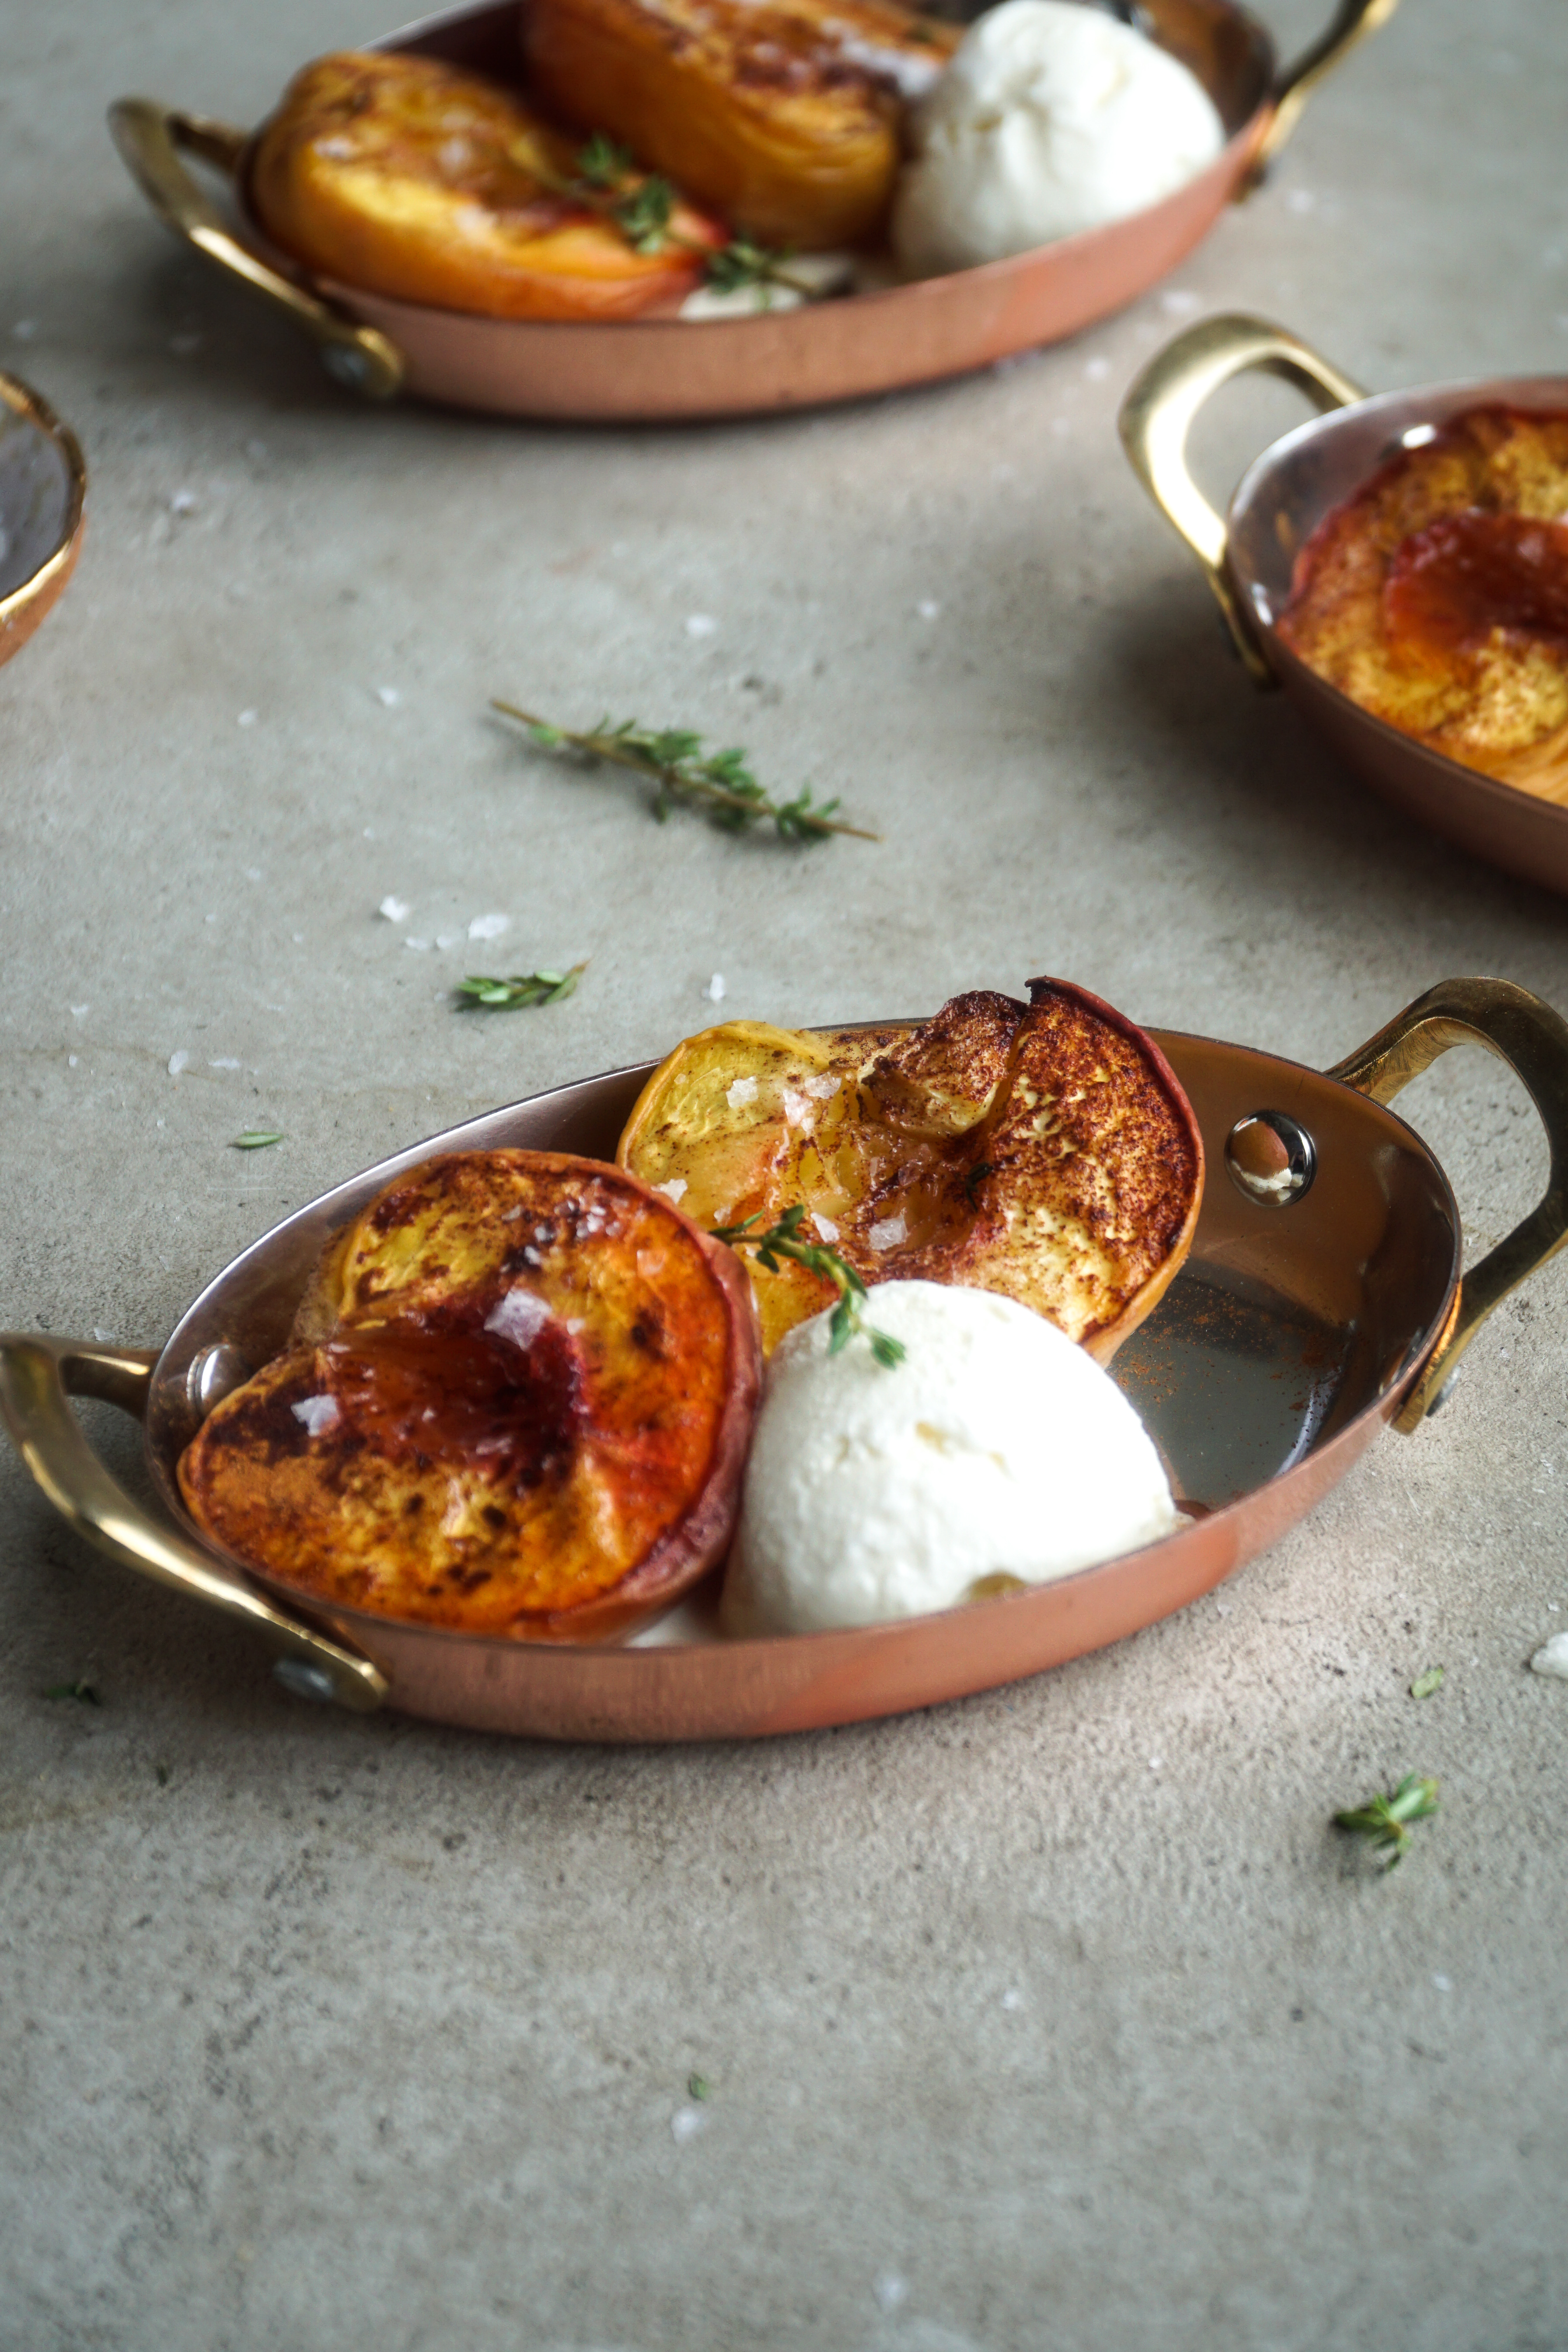 Dish with two peach halves and a scoop of ice cream with a sprig of thyme.